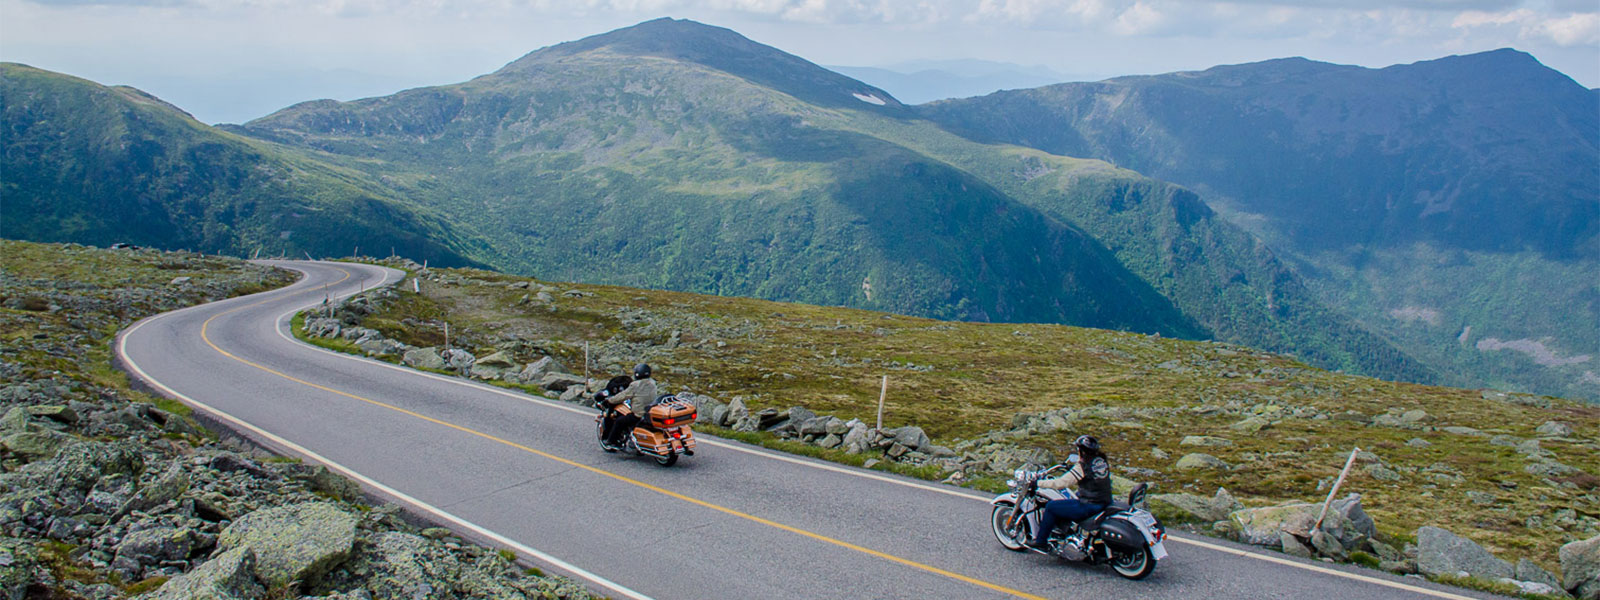 Welcome to the Mt. Washington Auto Road - Mount Washington ...